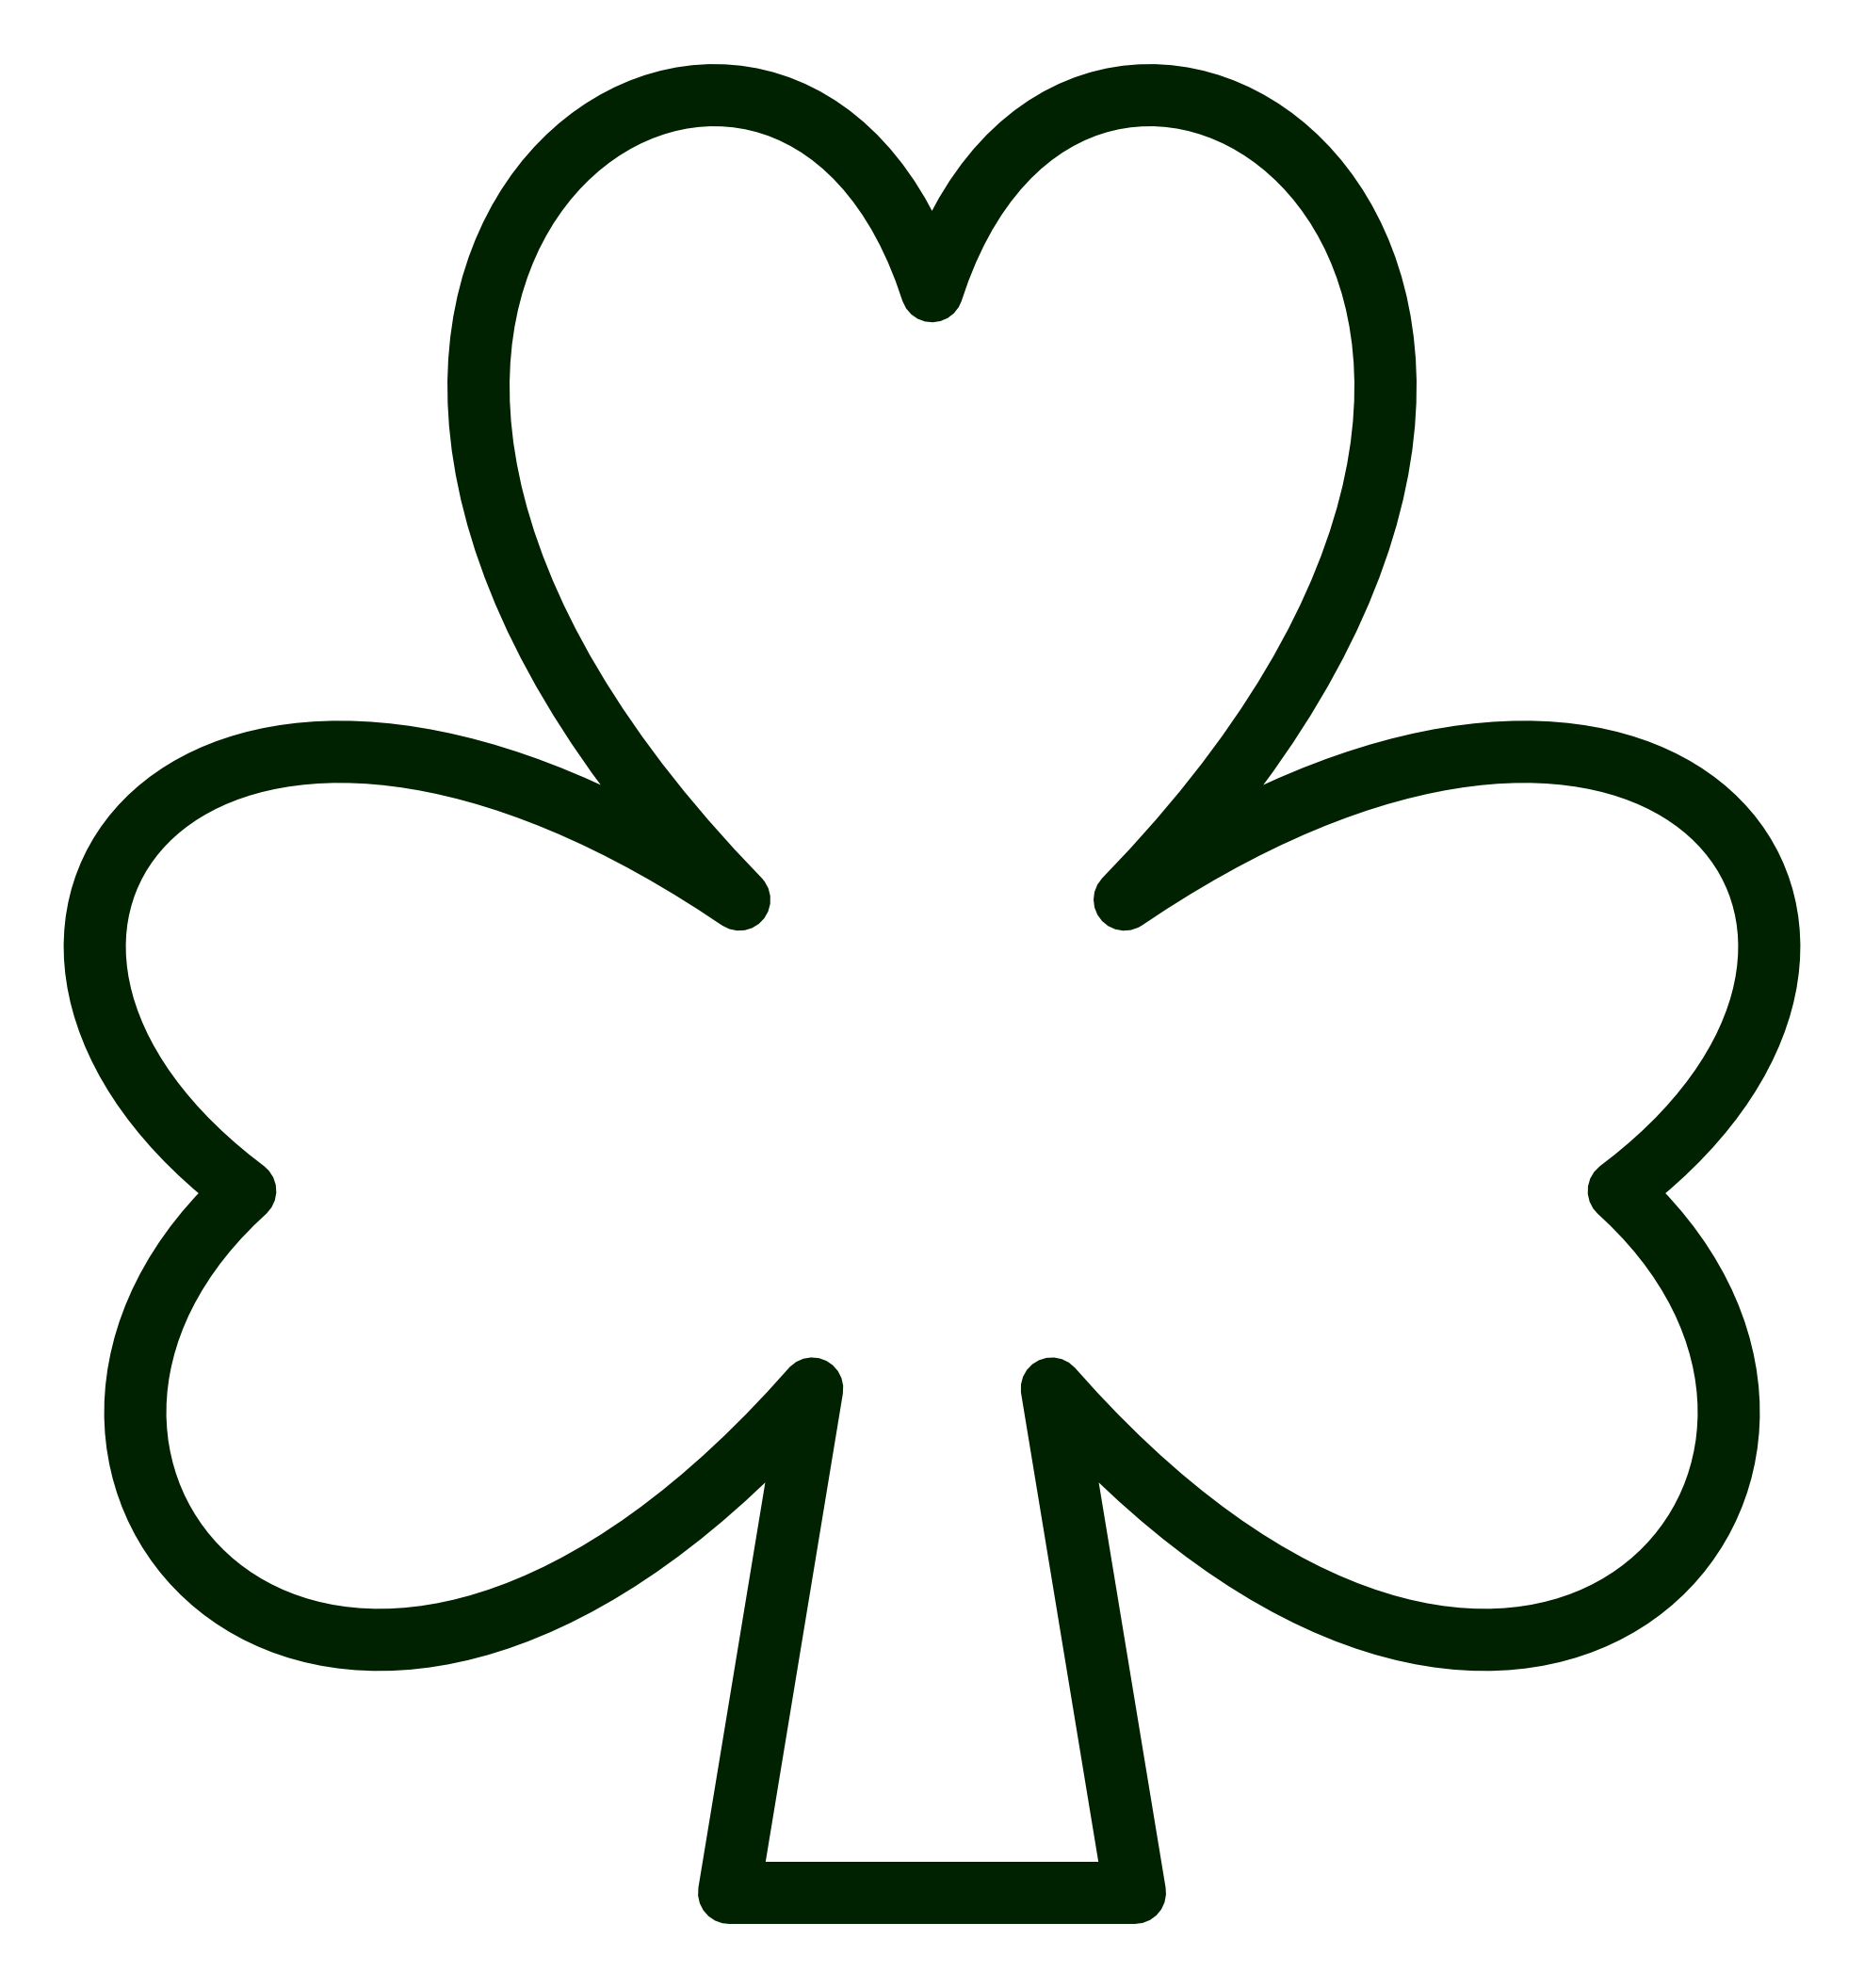 Shamrock clipart photos graphic royalty free library shamrock outline clipart | Quilt blocks | Shamrock template ... graphic royalty free library